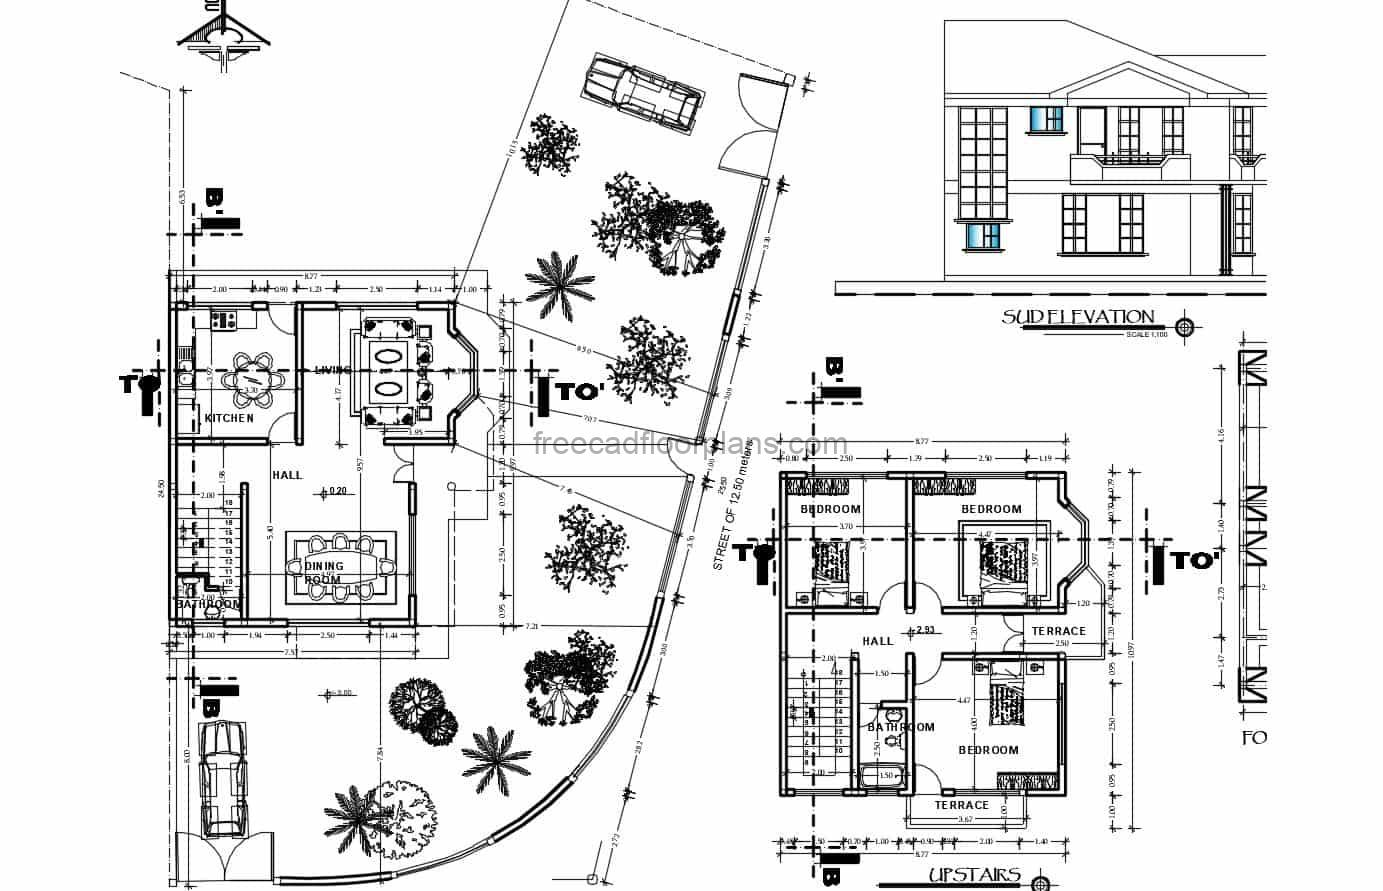 Complete project for a simple two-story residence with three bedrooms on the second level, plan with architectural distribution and dimensioned floor plan. DWG 2D plan for free download